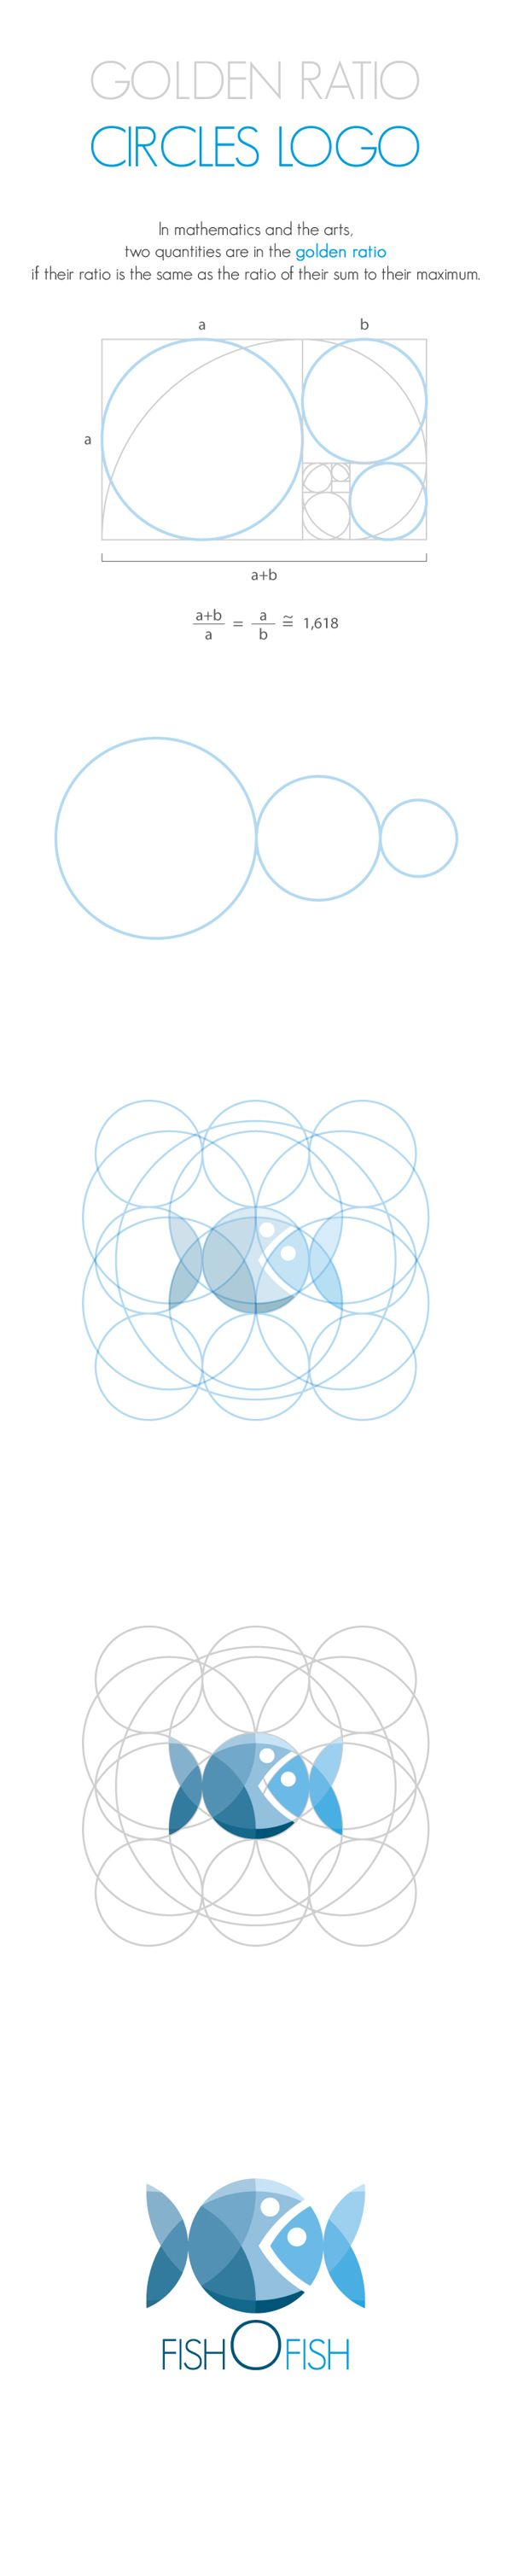 GOLDEN RATIO - CIRCLES LOGO by Andrea Banchini, via Behance